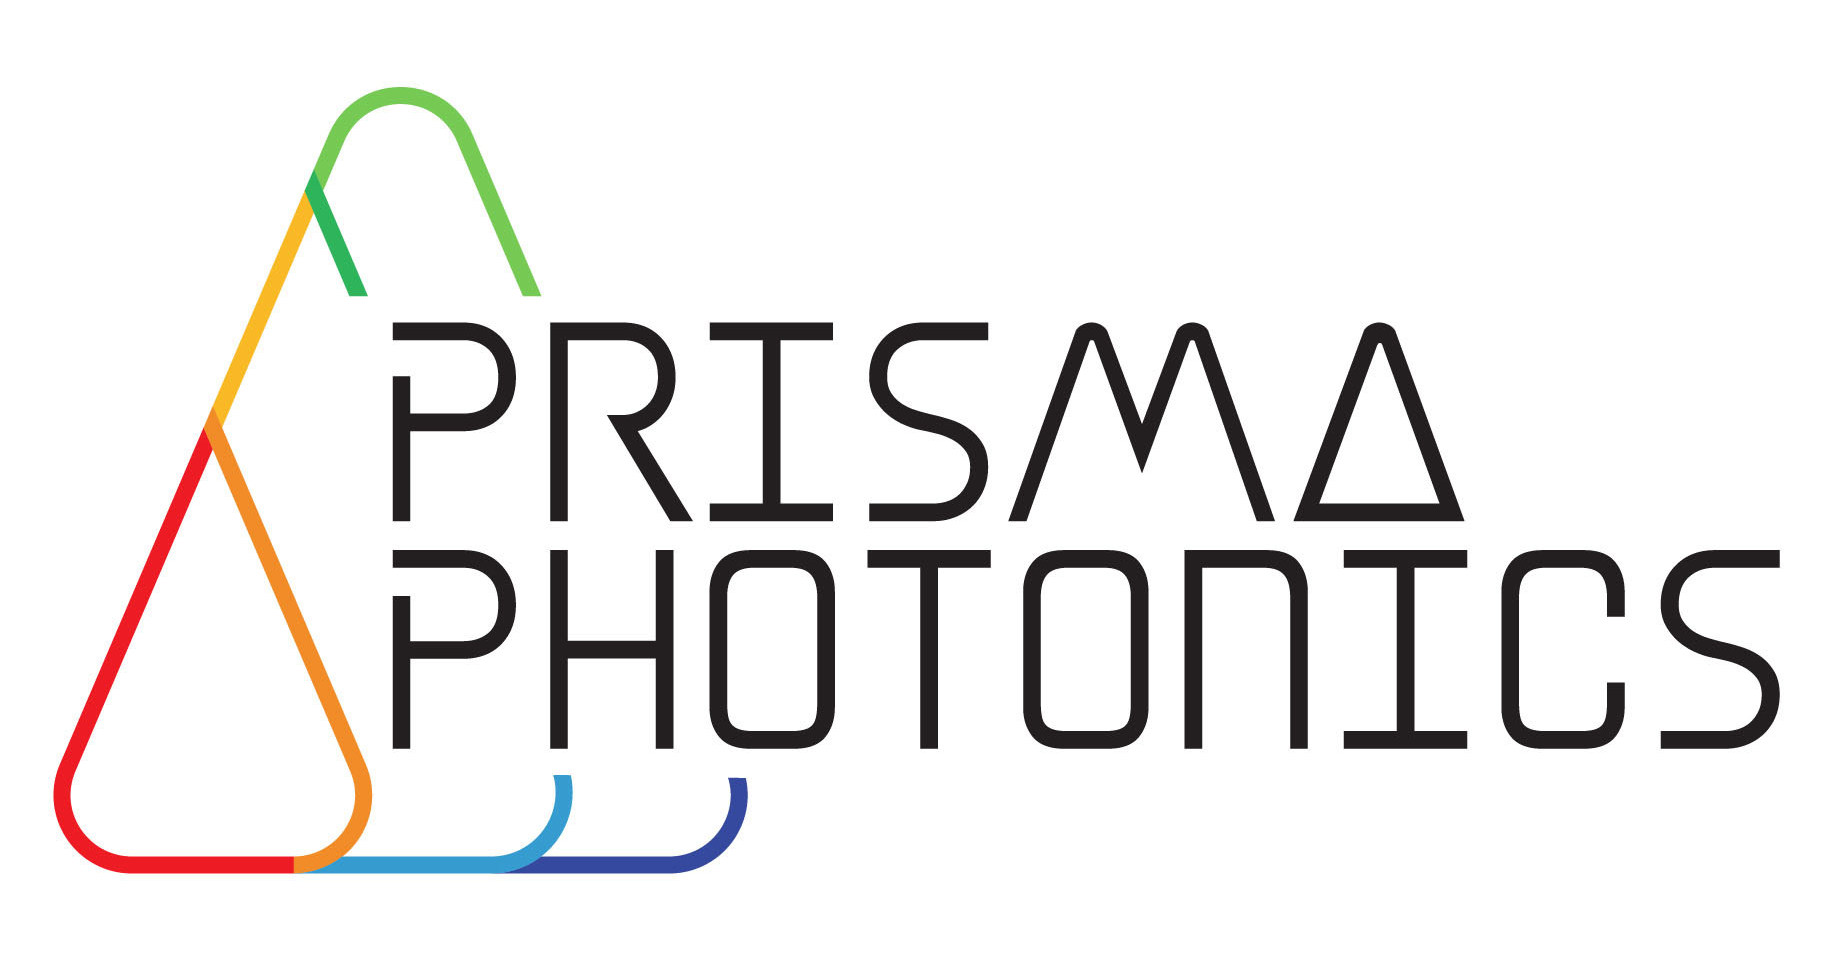 Prisma logo clipart clipart download Prisma Photonics Won the GCA Challenge for Monitoring and ... clipart download